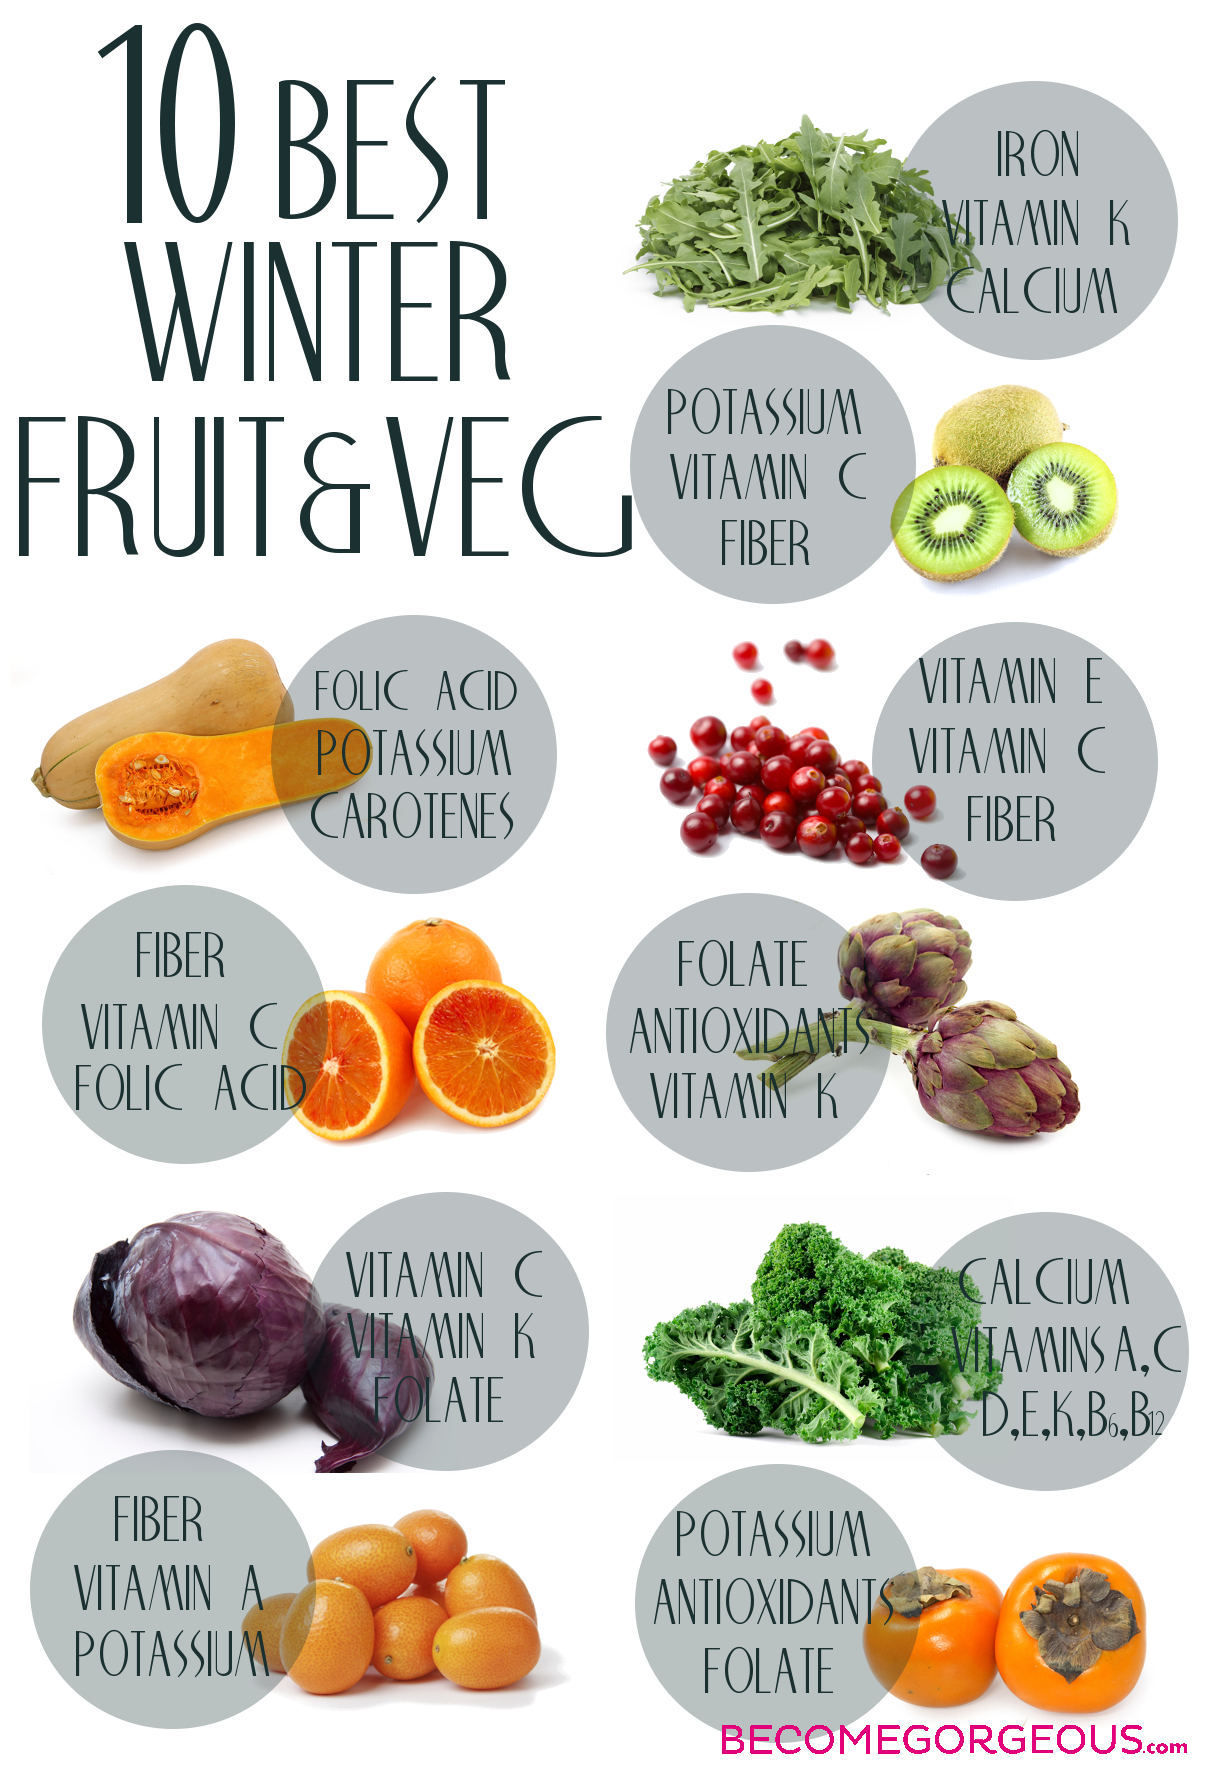 Best Winter Fruits And Vegetables